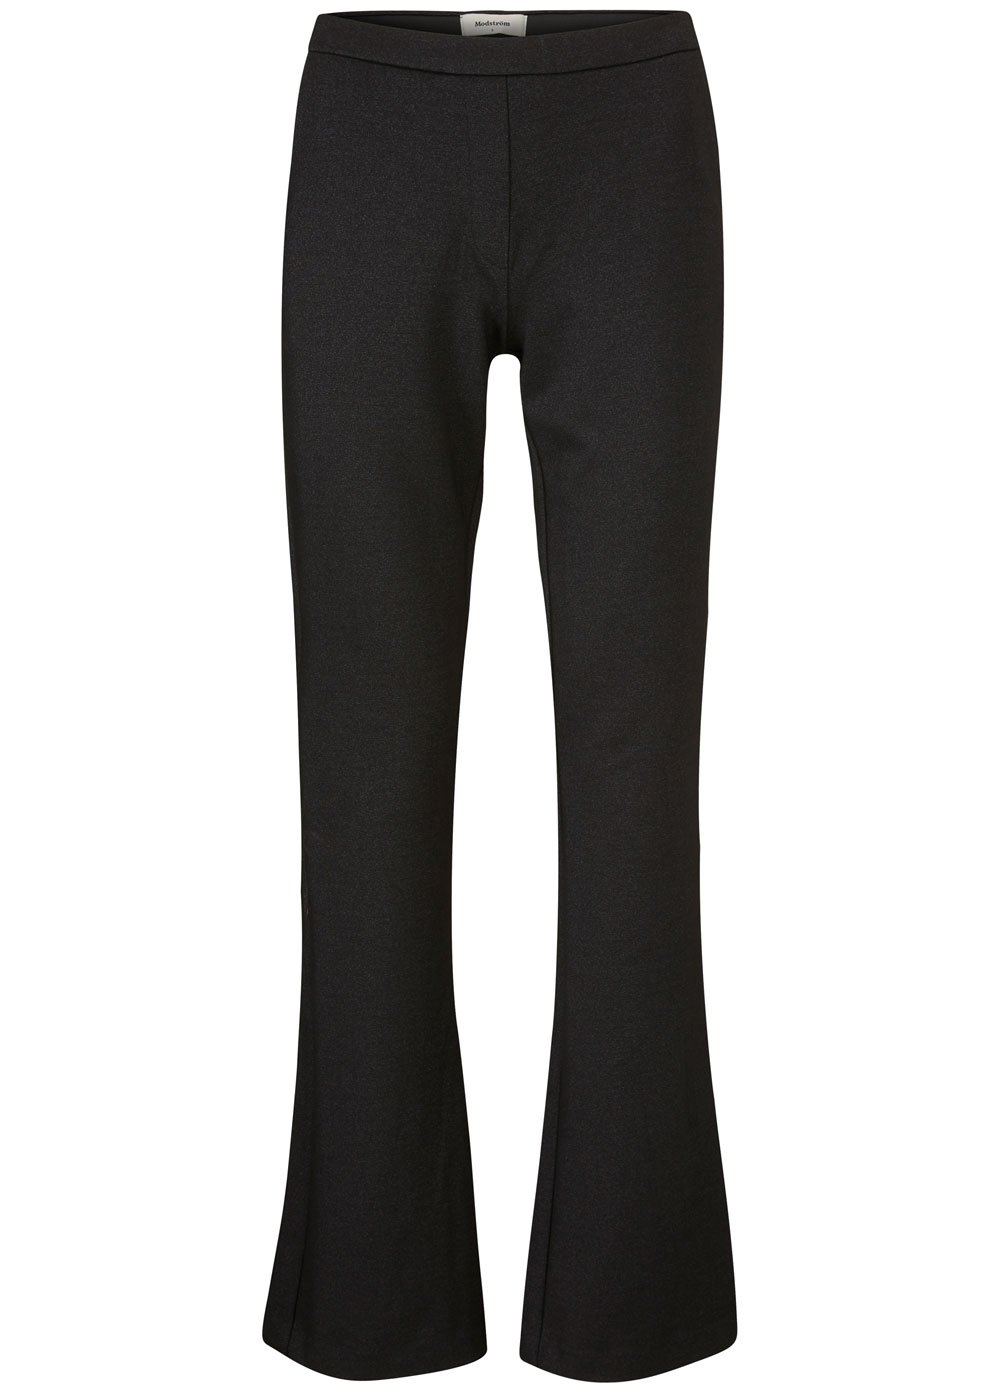 Tanny Lurex Flare Pants - Black